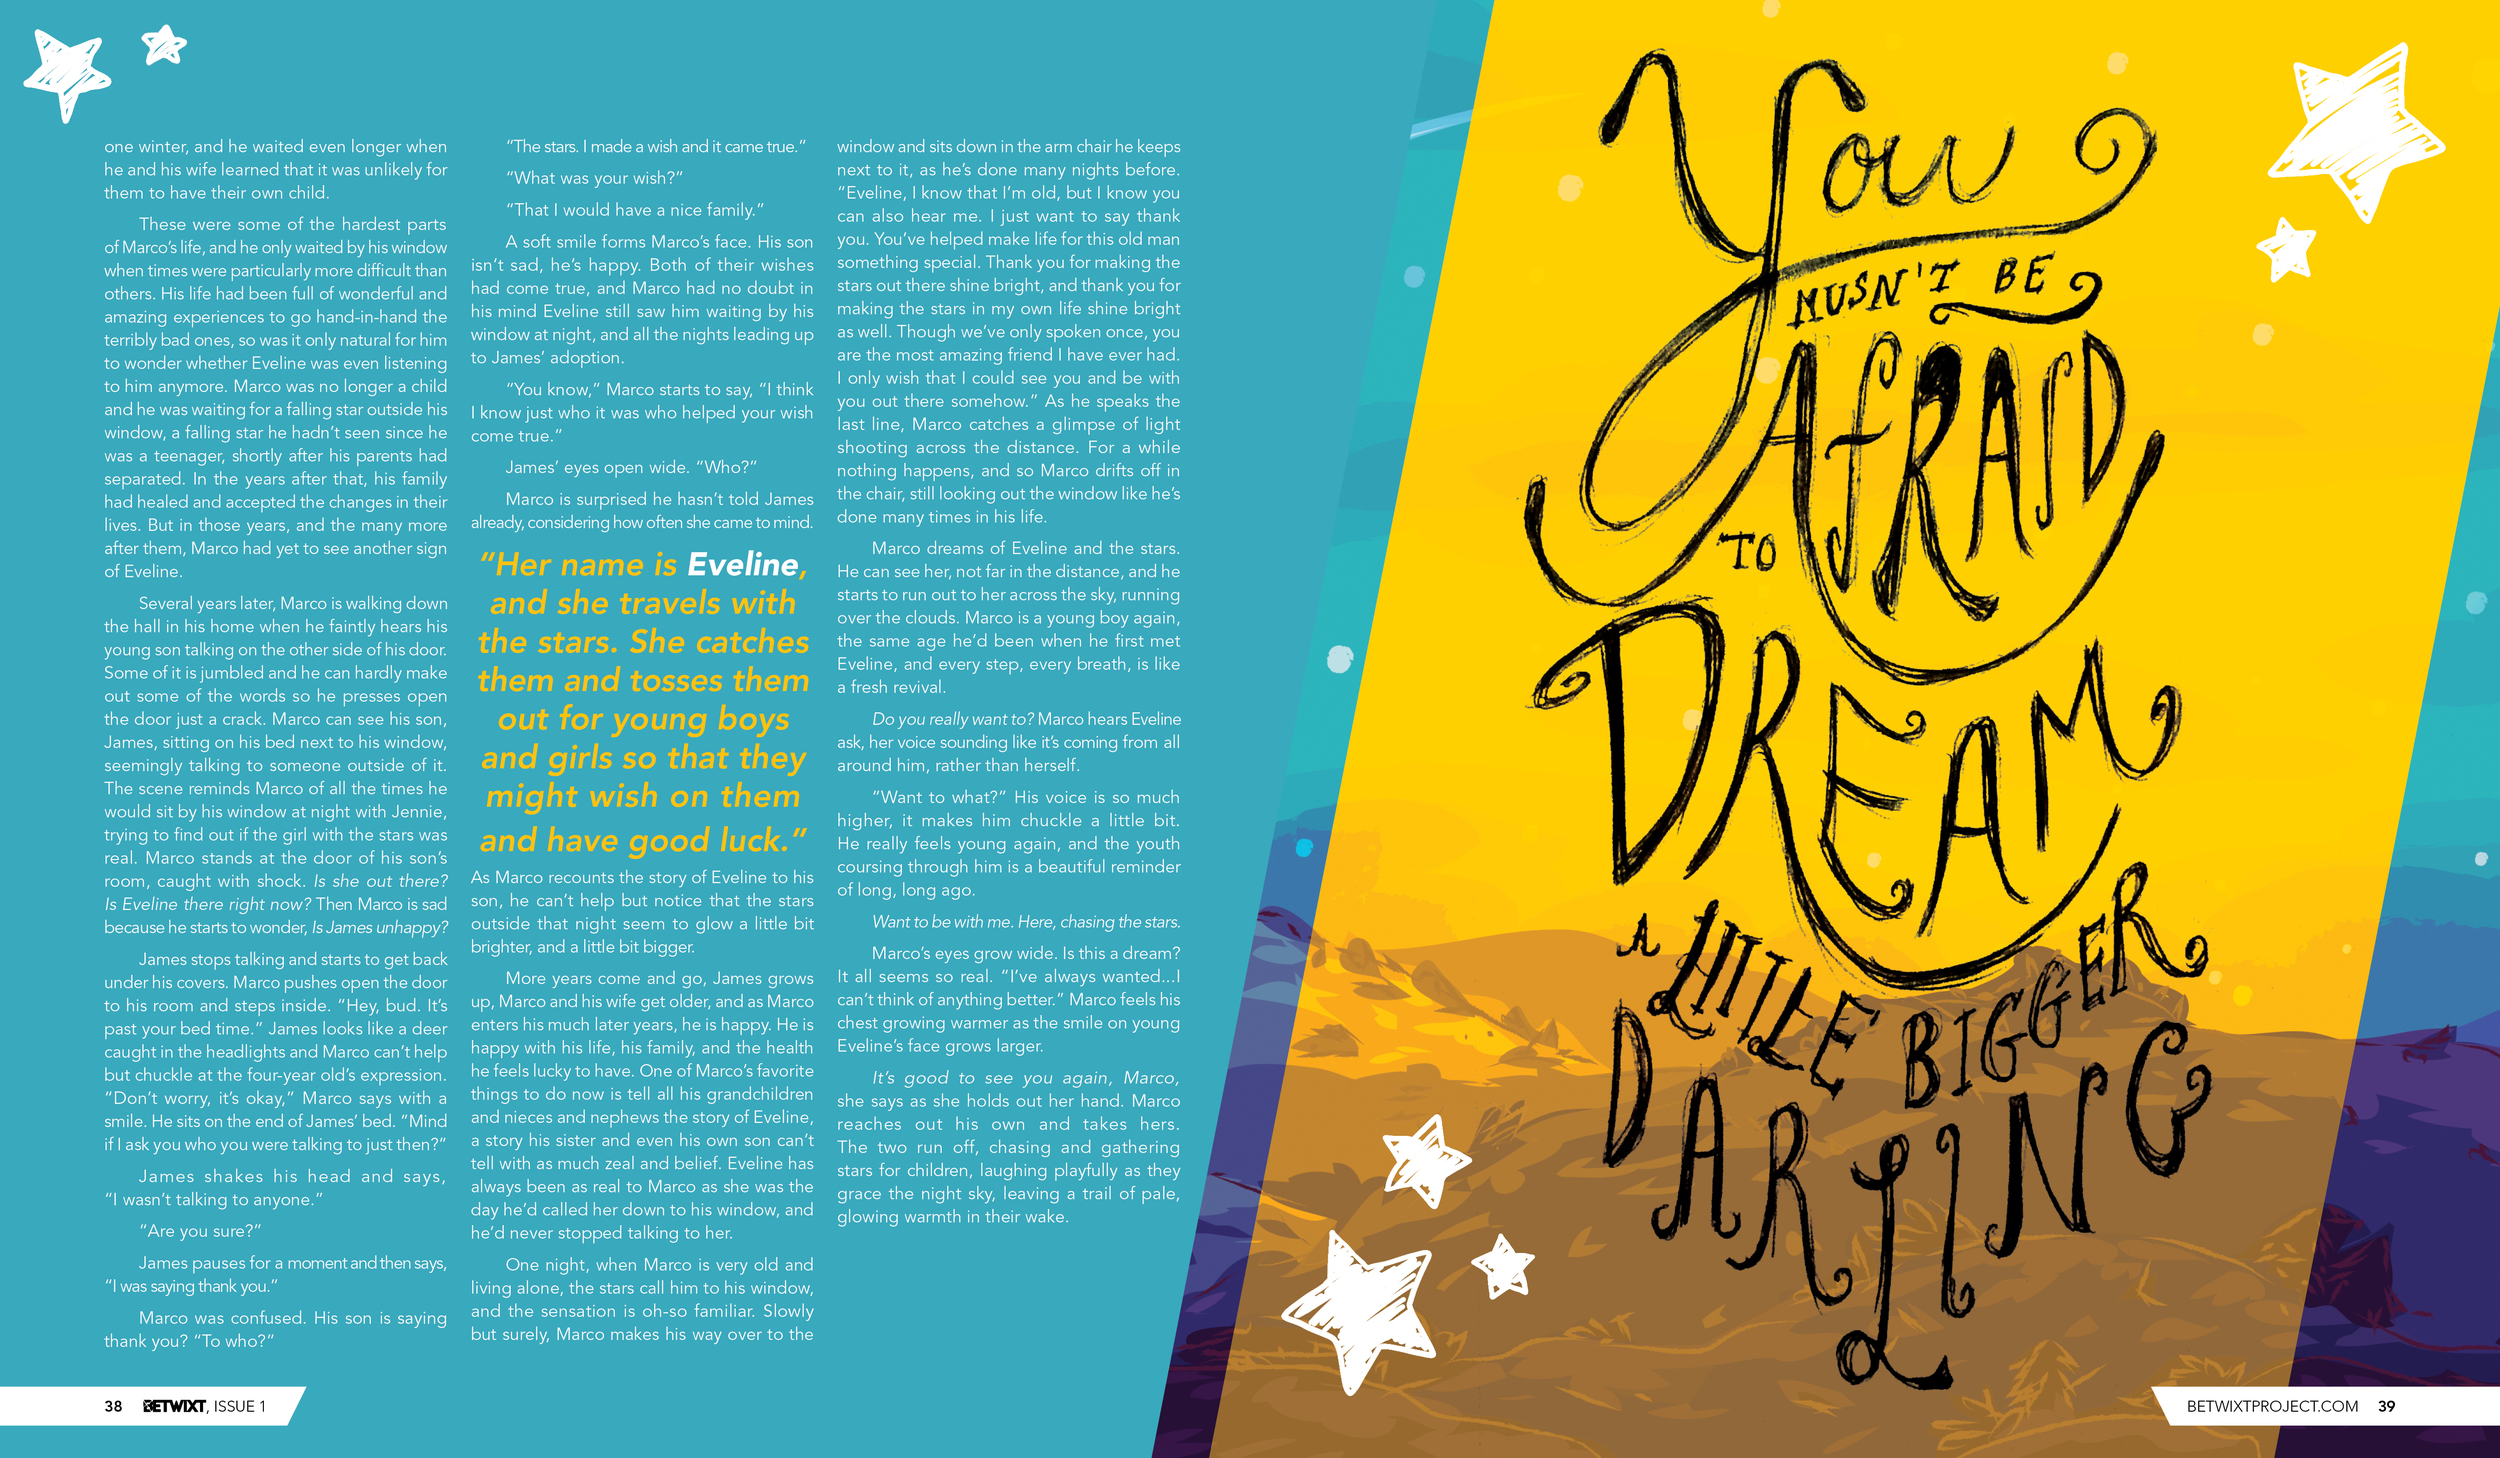 betwixt spreads for the interewebs20.jpg